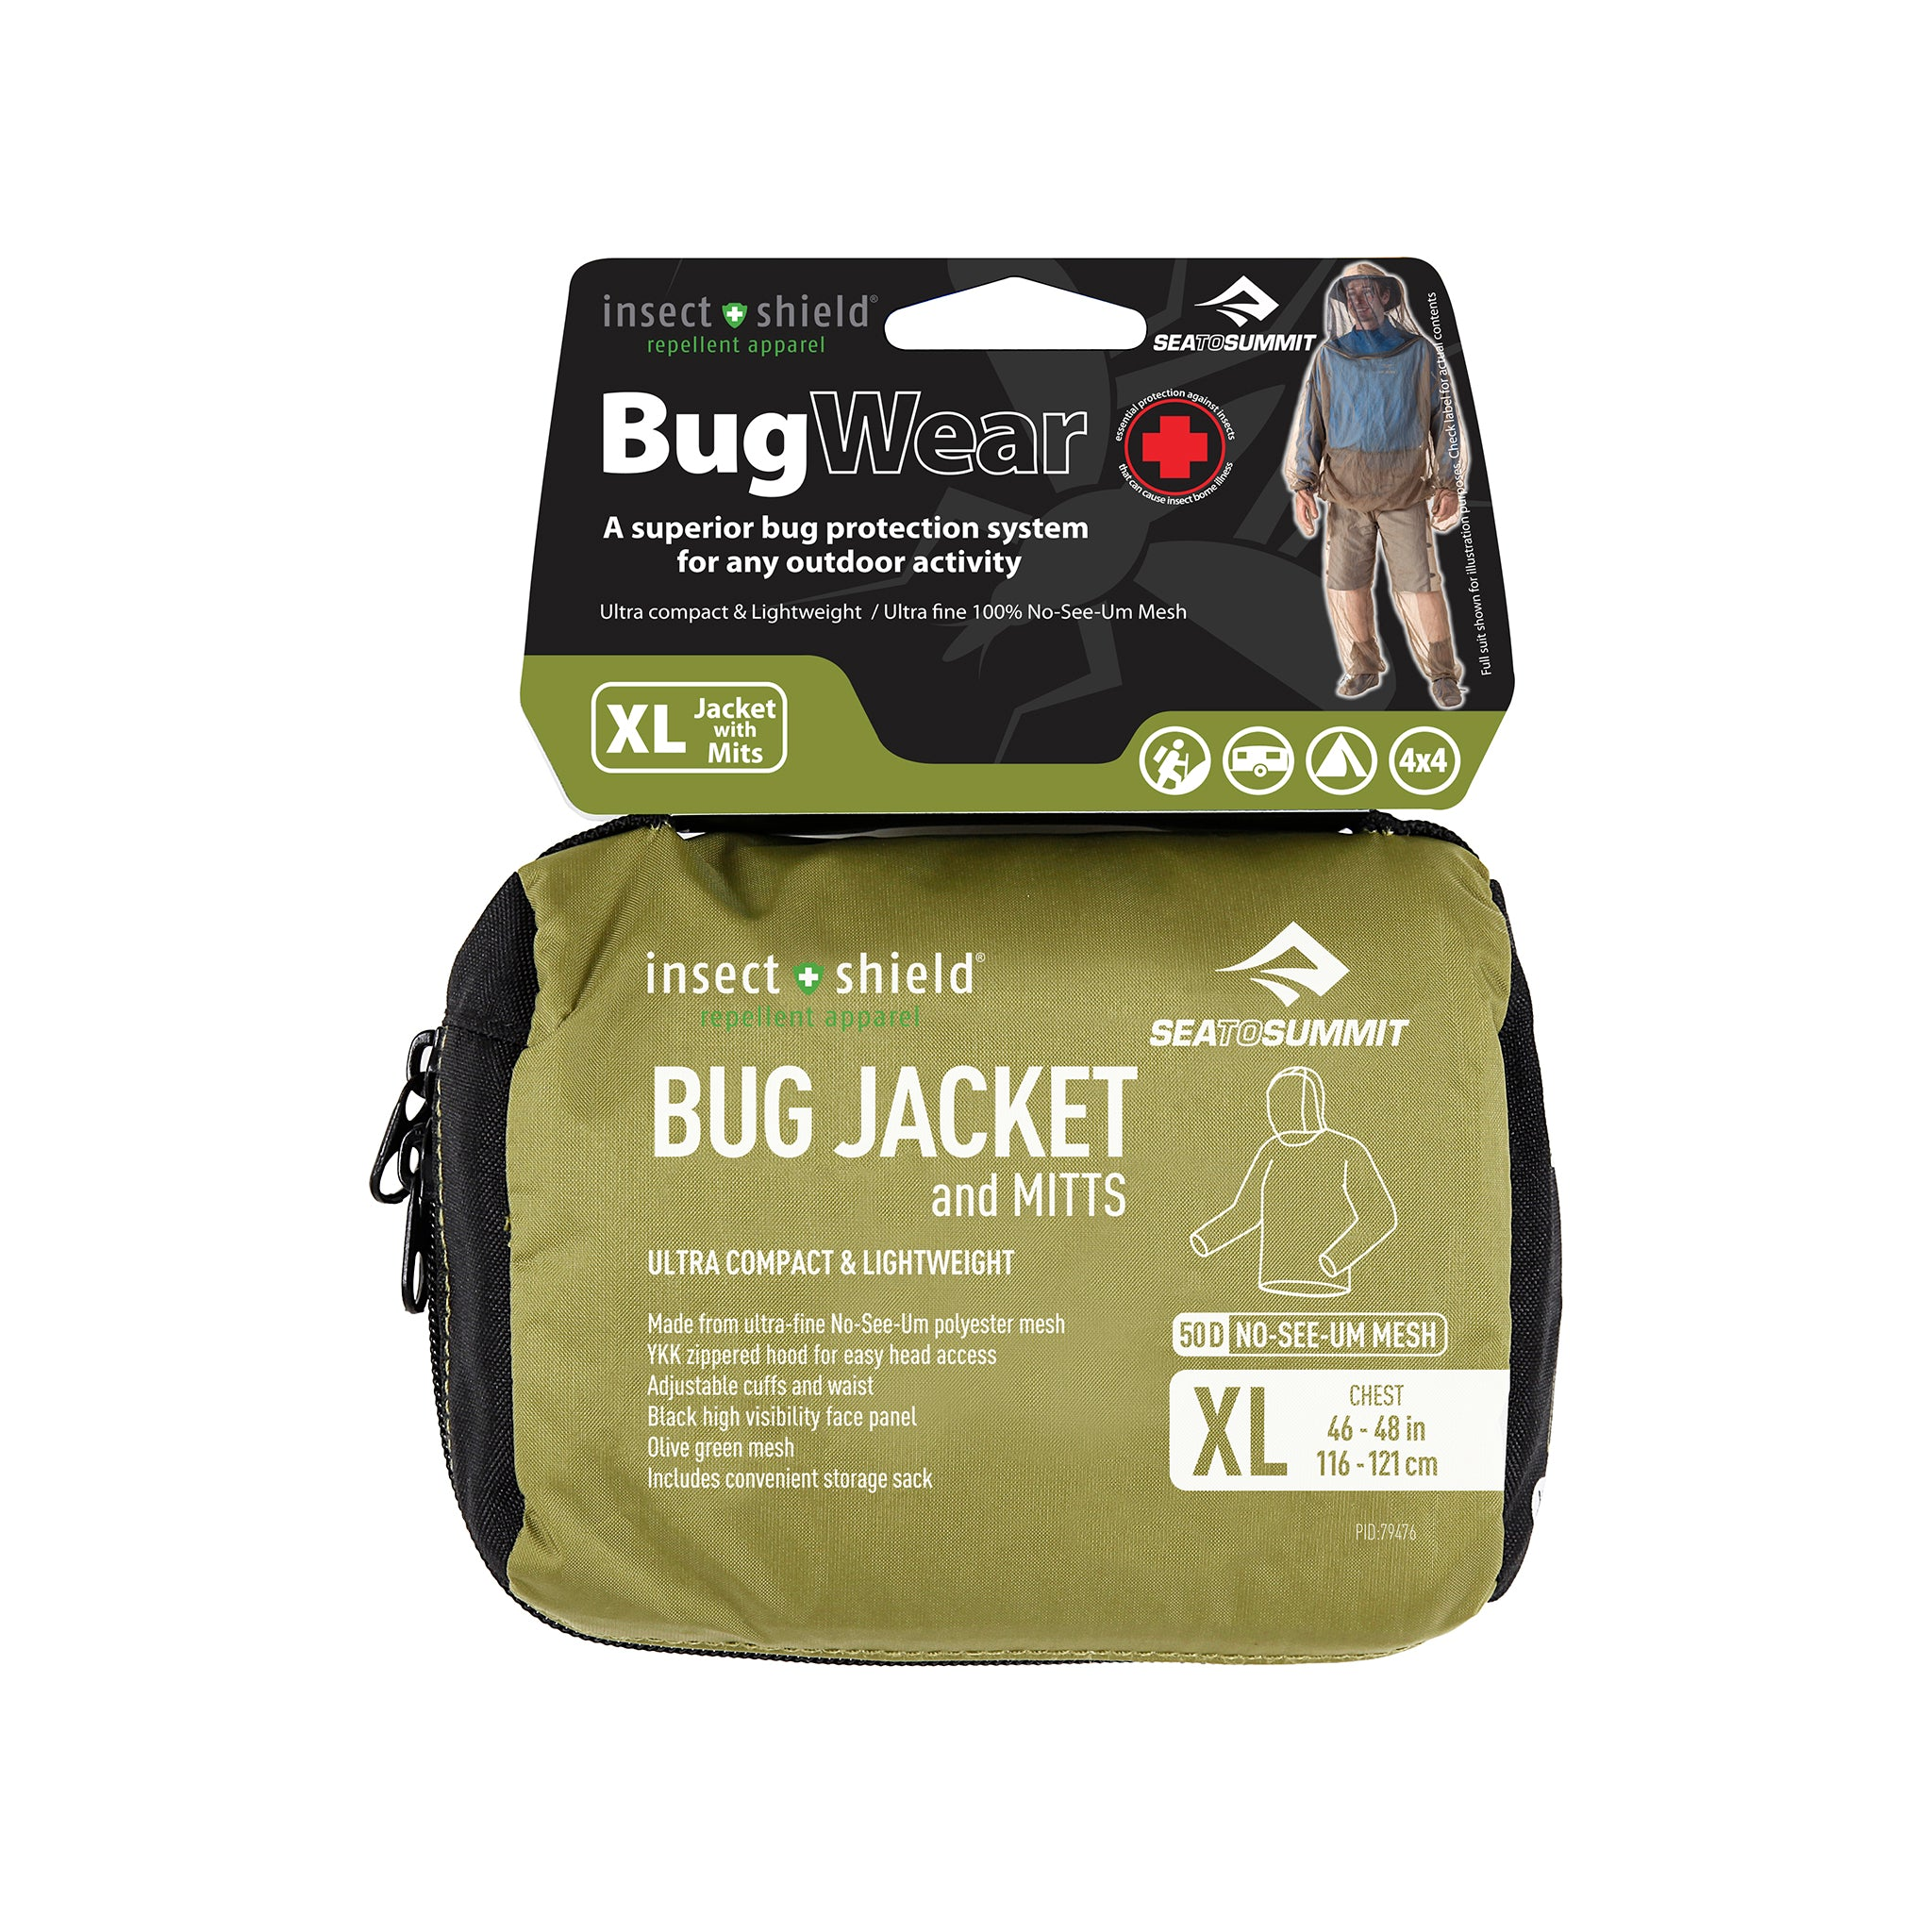 Bug Jacket _ mosquito protection clothing _ insect shield _ extra large